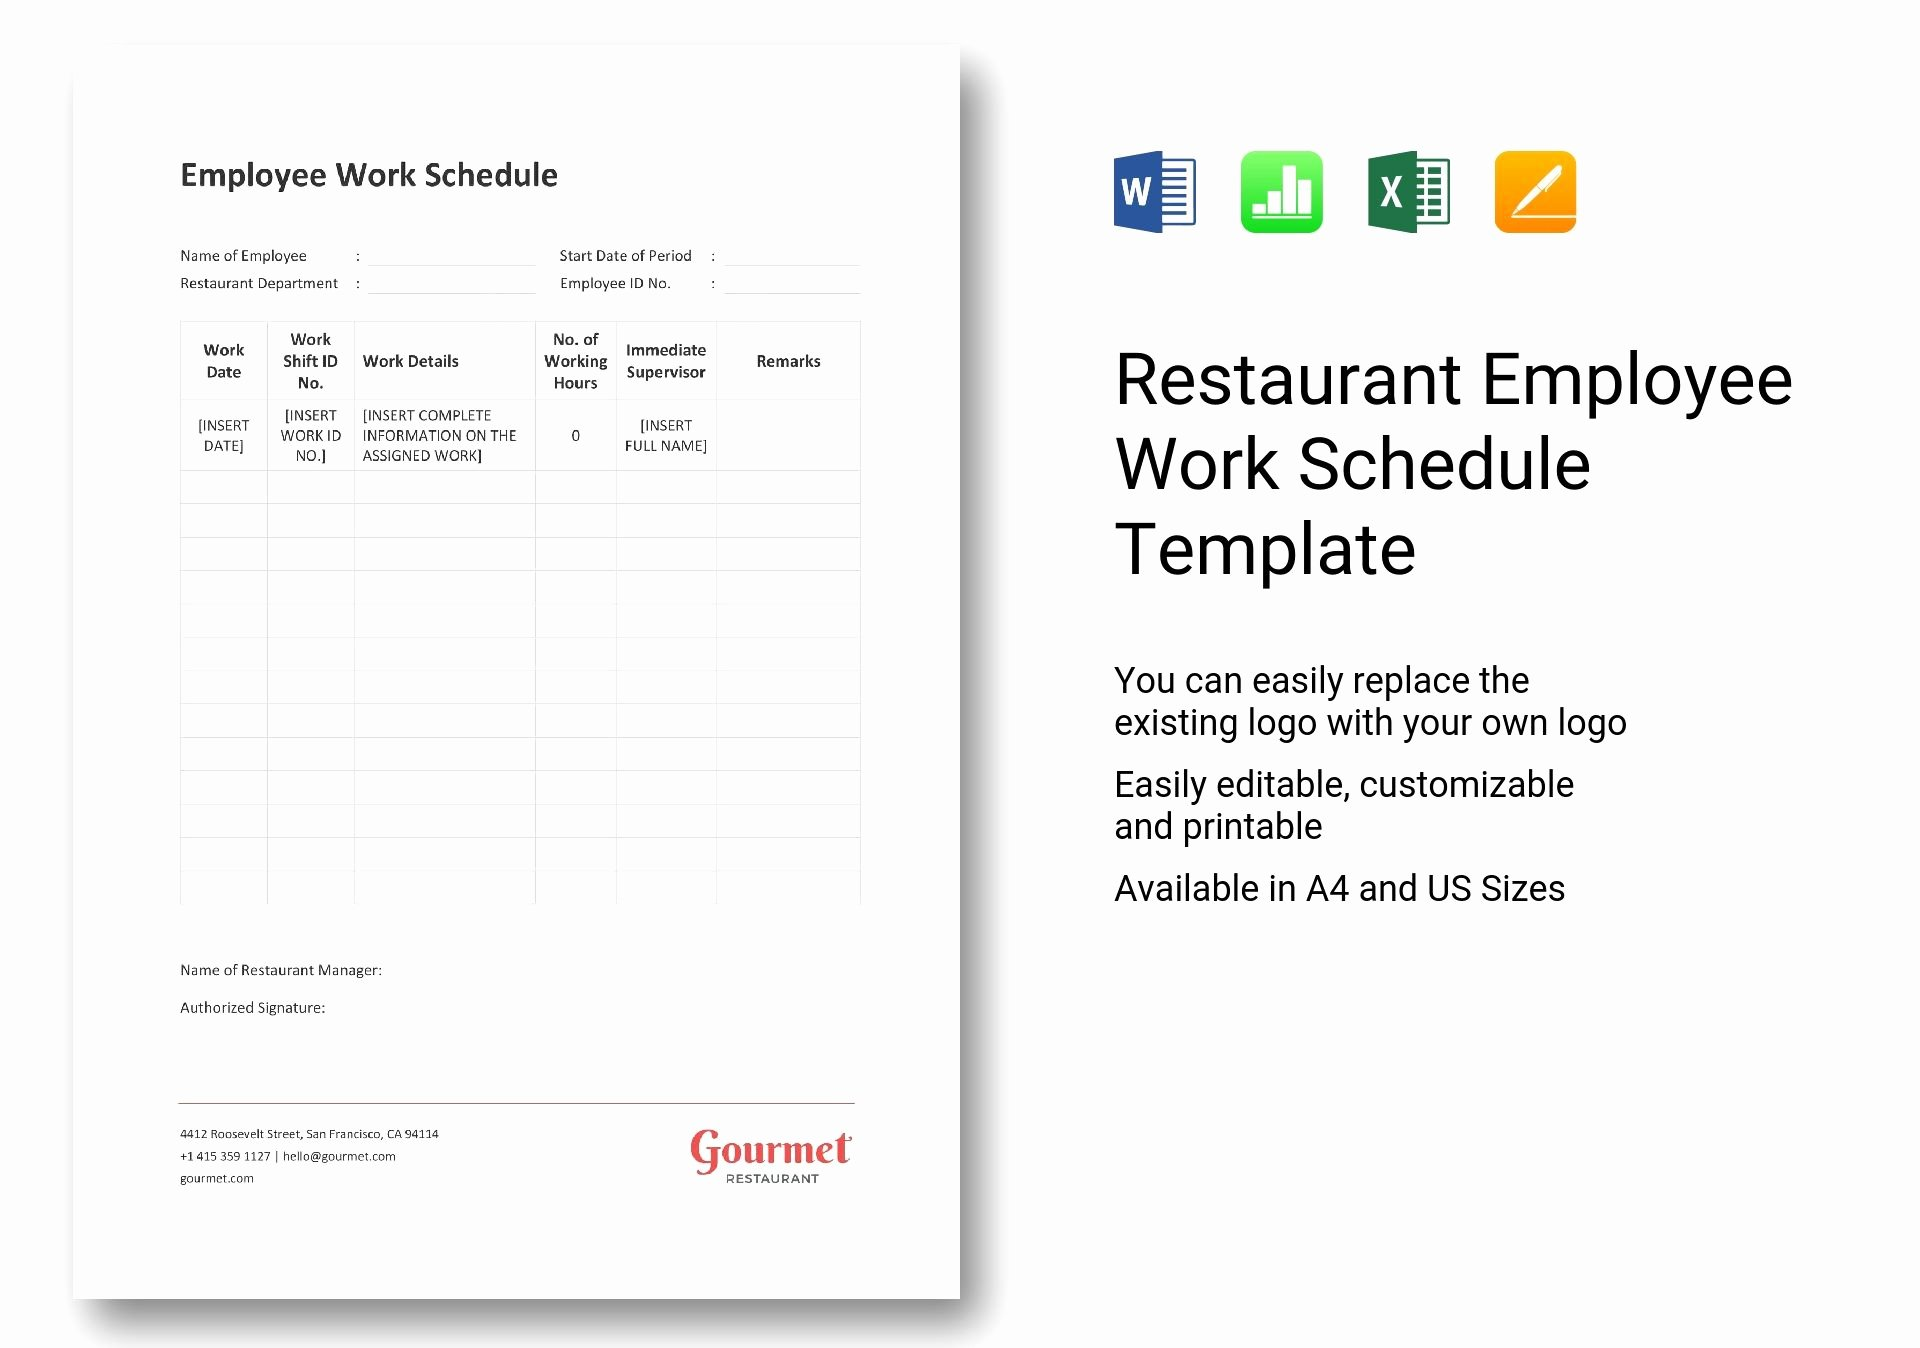 Restaurant Work Schedule Template Lovely Restaurant Employee Work Schedule Template In Word Excel